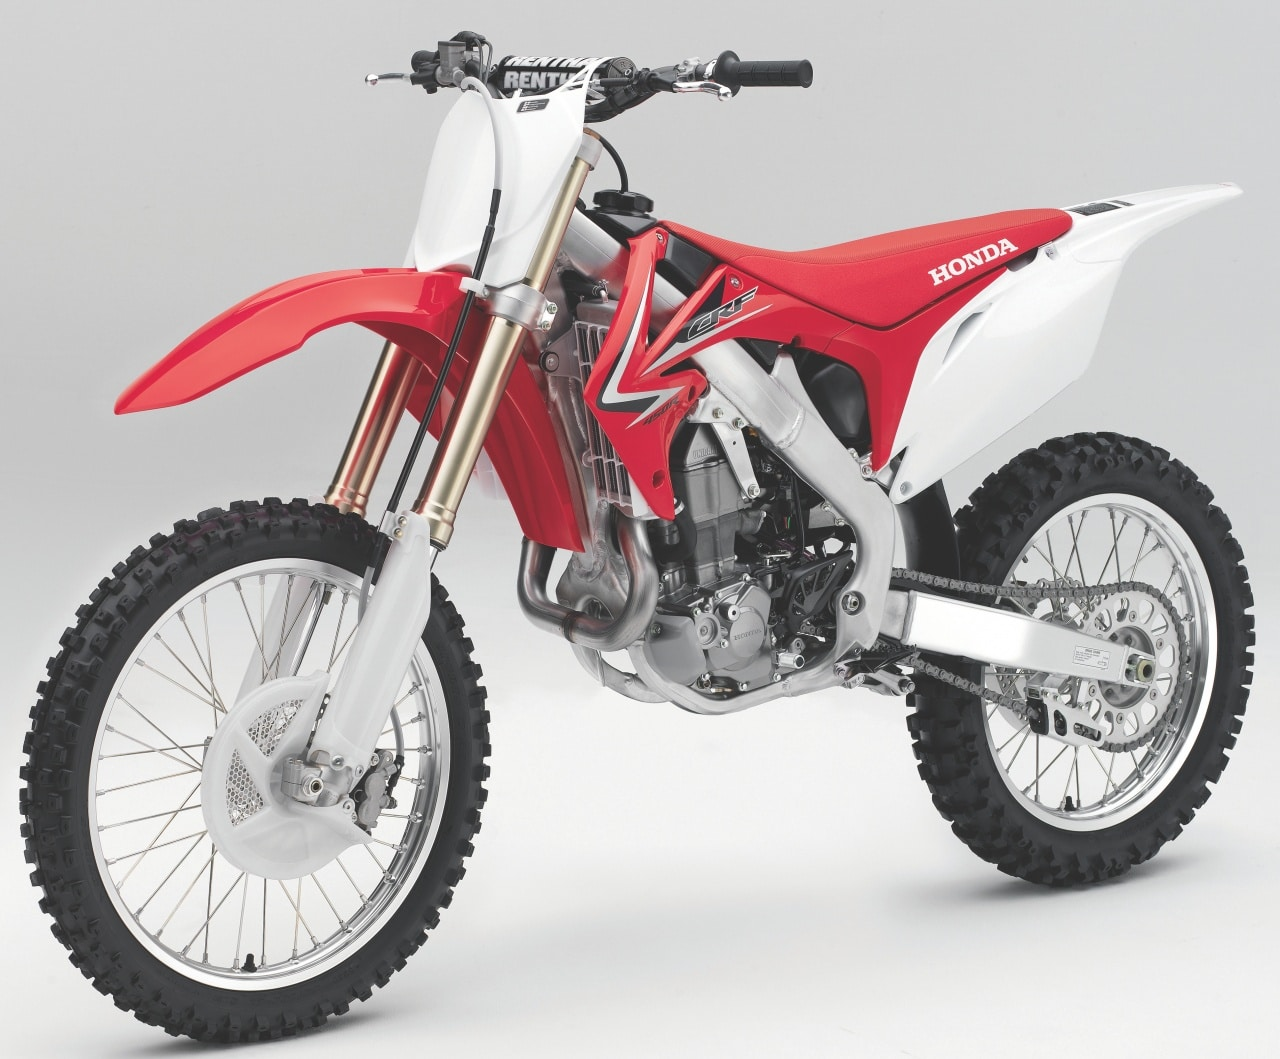 ASK THE MXPERTS: MEMORIES OF THE 2009 CRF450 & THE HARSH REALITIES ...